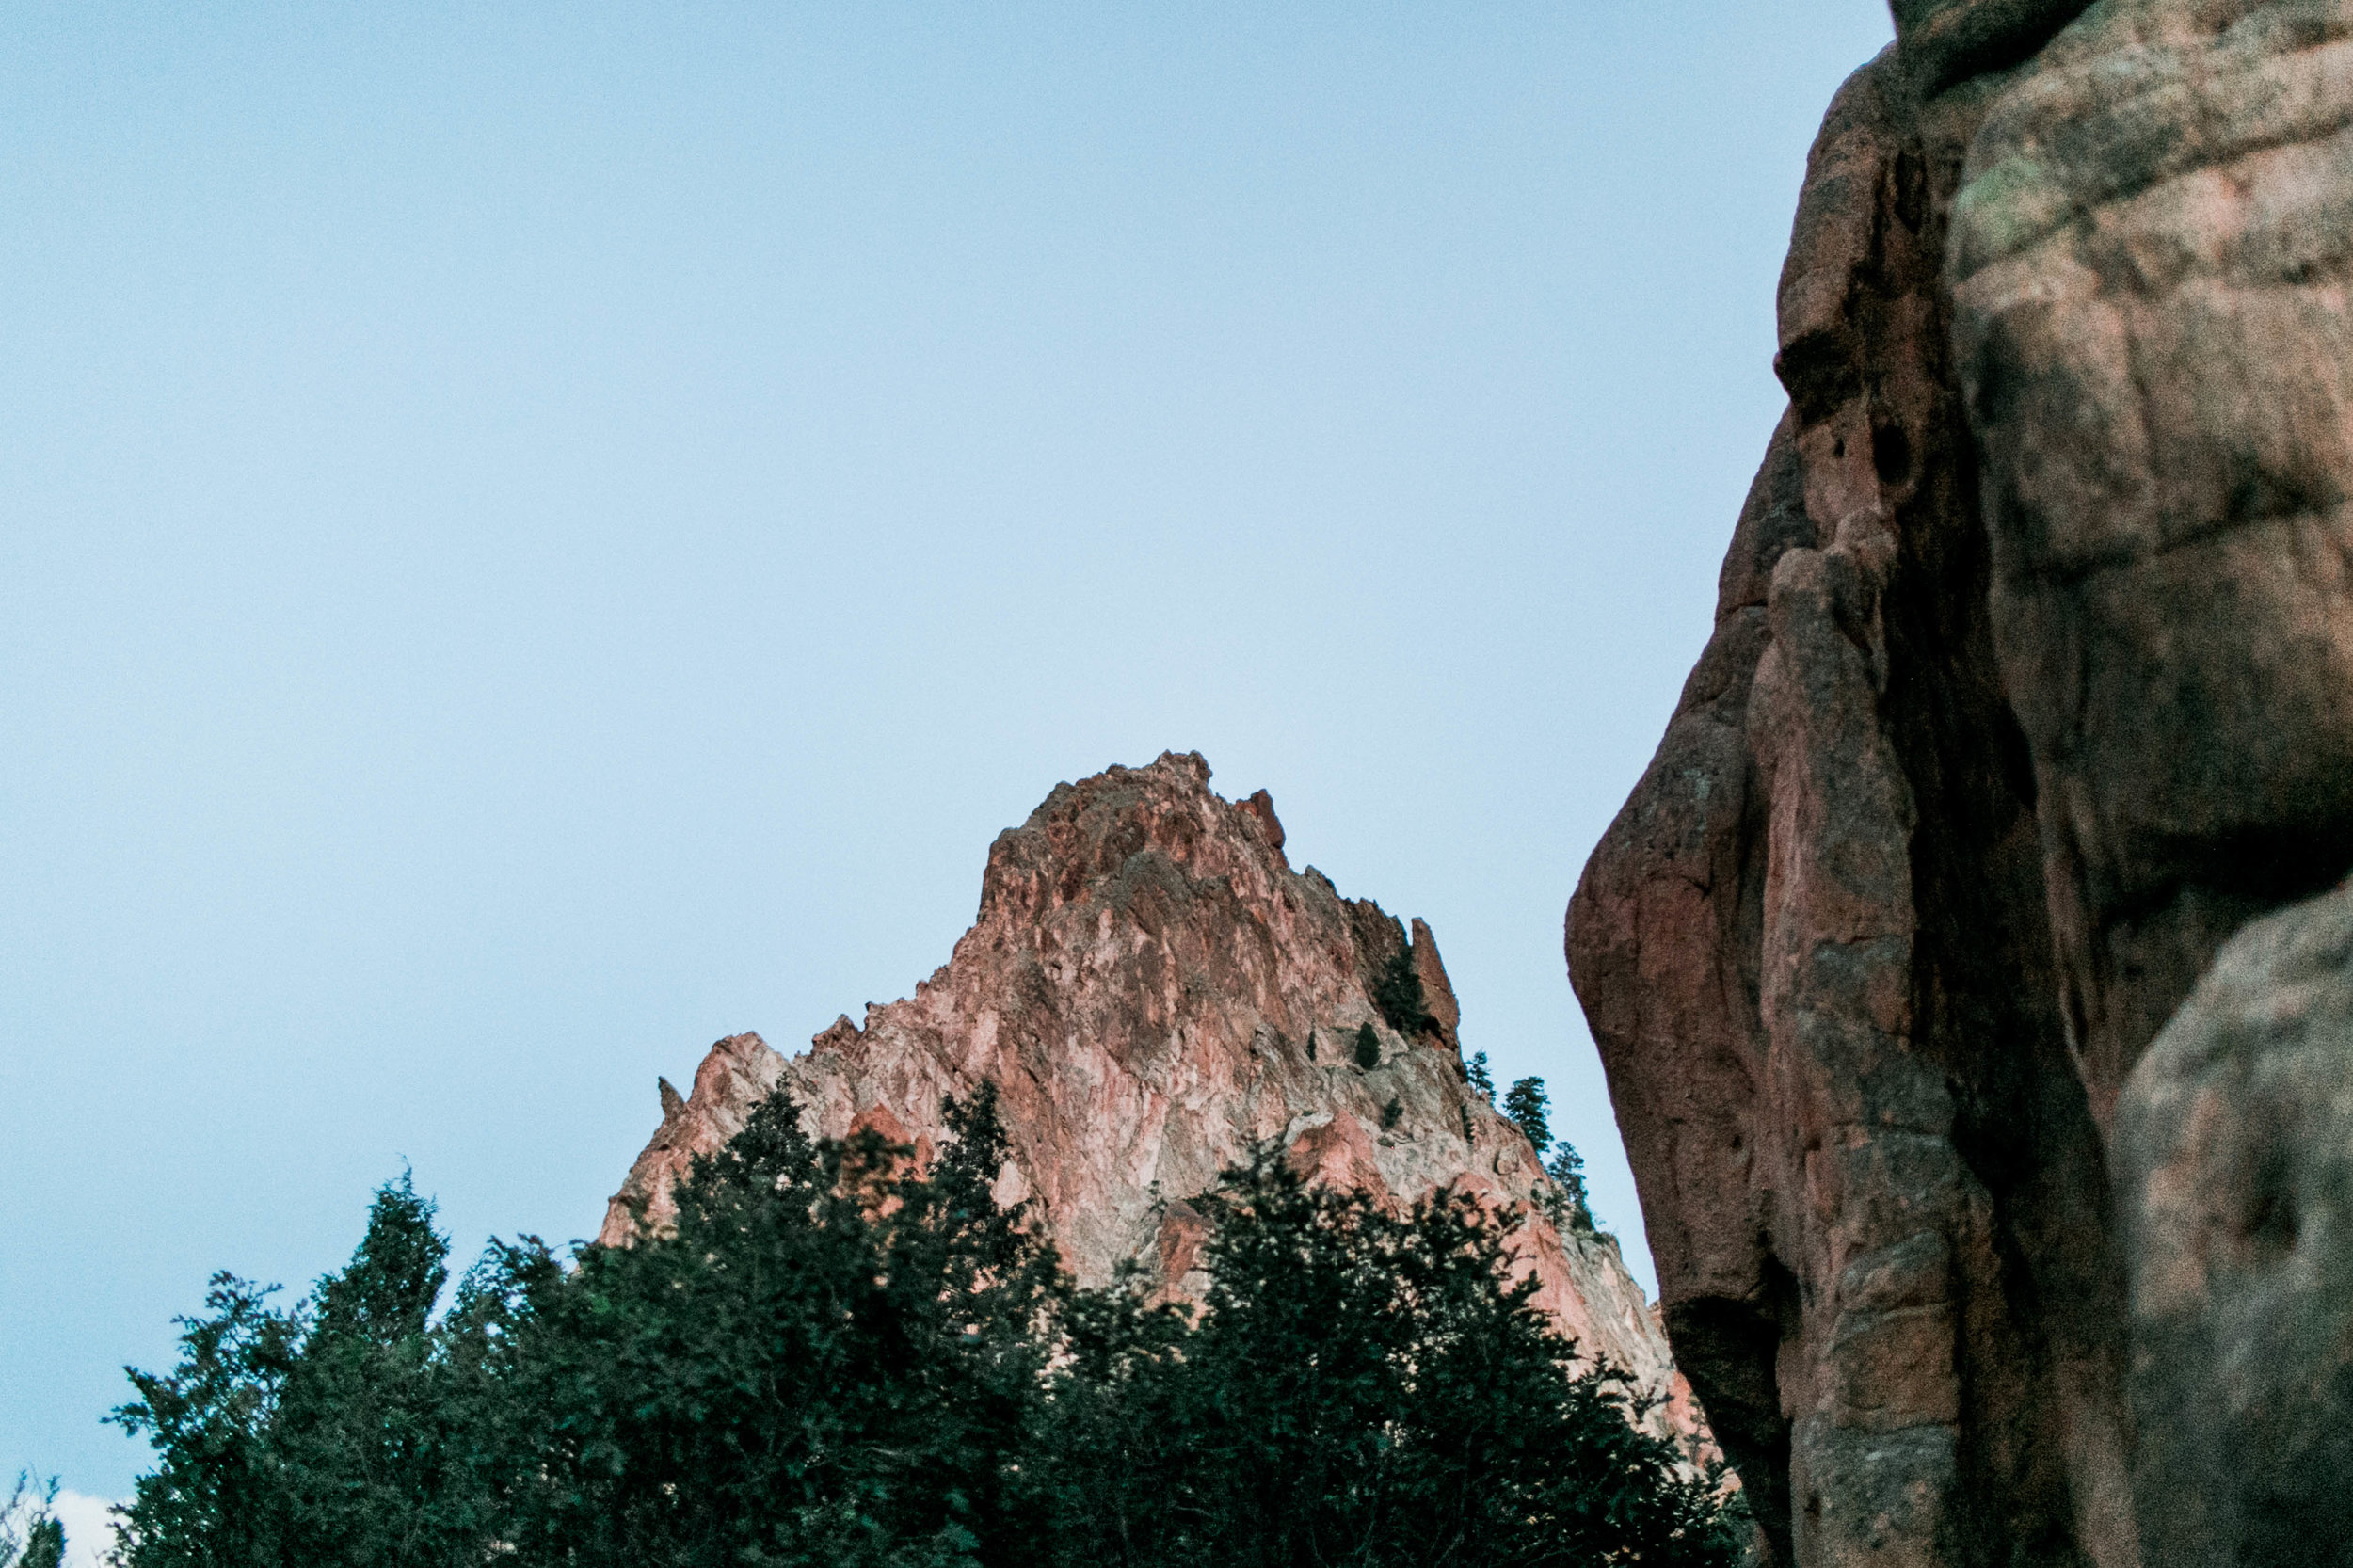 Colorado Springs Engagement Wedding Adventure Photographer - Erin and Jim 46.jpg